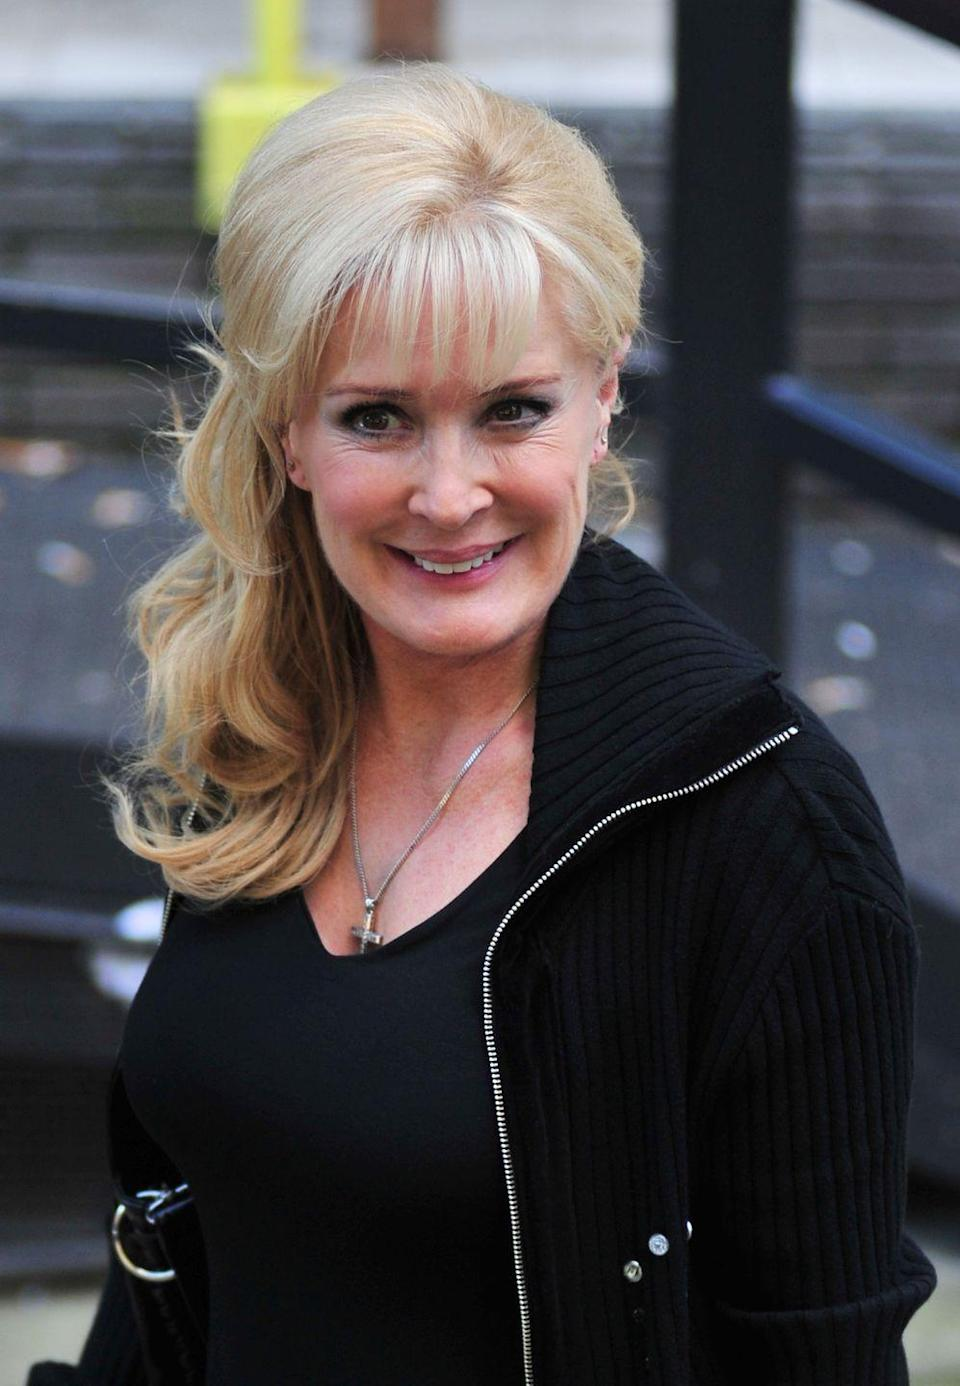 "<p><strong>Who is she? </strong>Beverley has played Liz McDonald on Coronation Street for 30 years (not continuously). </p><p><strong>What's she said about I'm A Celeb? </strong>Speaking to the Mail, Beverley said of Coronation Street fans who will be watching: ""They do see me as Liz and I think they think I will be going in with a wonder bra on and a very short skirt! </p><p>""I think as I have played Liz for so long, people think I am quite glamorous and they think I am covered in makeup all the time. To be totally honest, I am just the opposite! I hate being dressed up and I don't care if my nails break either! I am quite at home in comfy baggy clothes.""</p>"